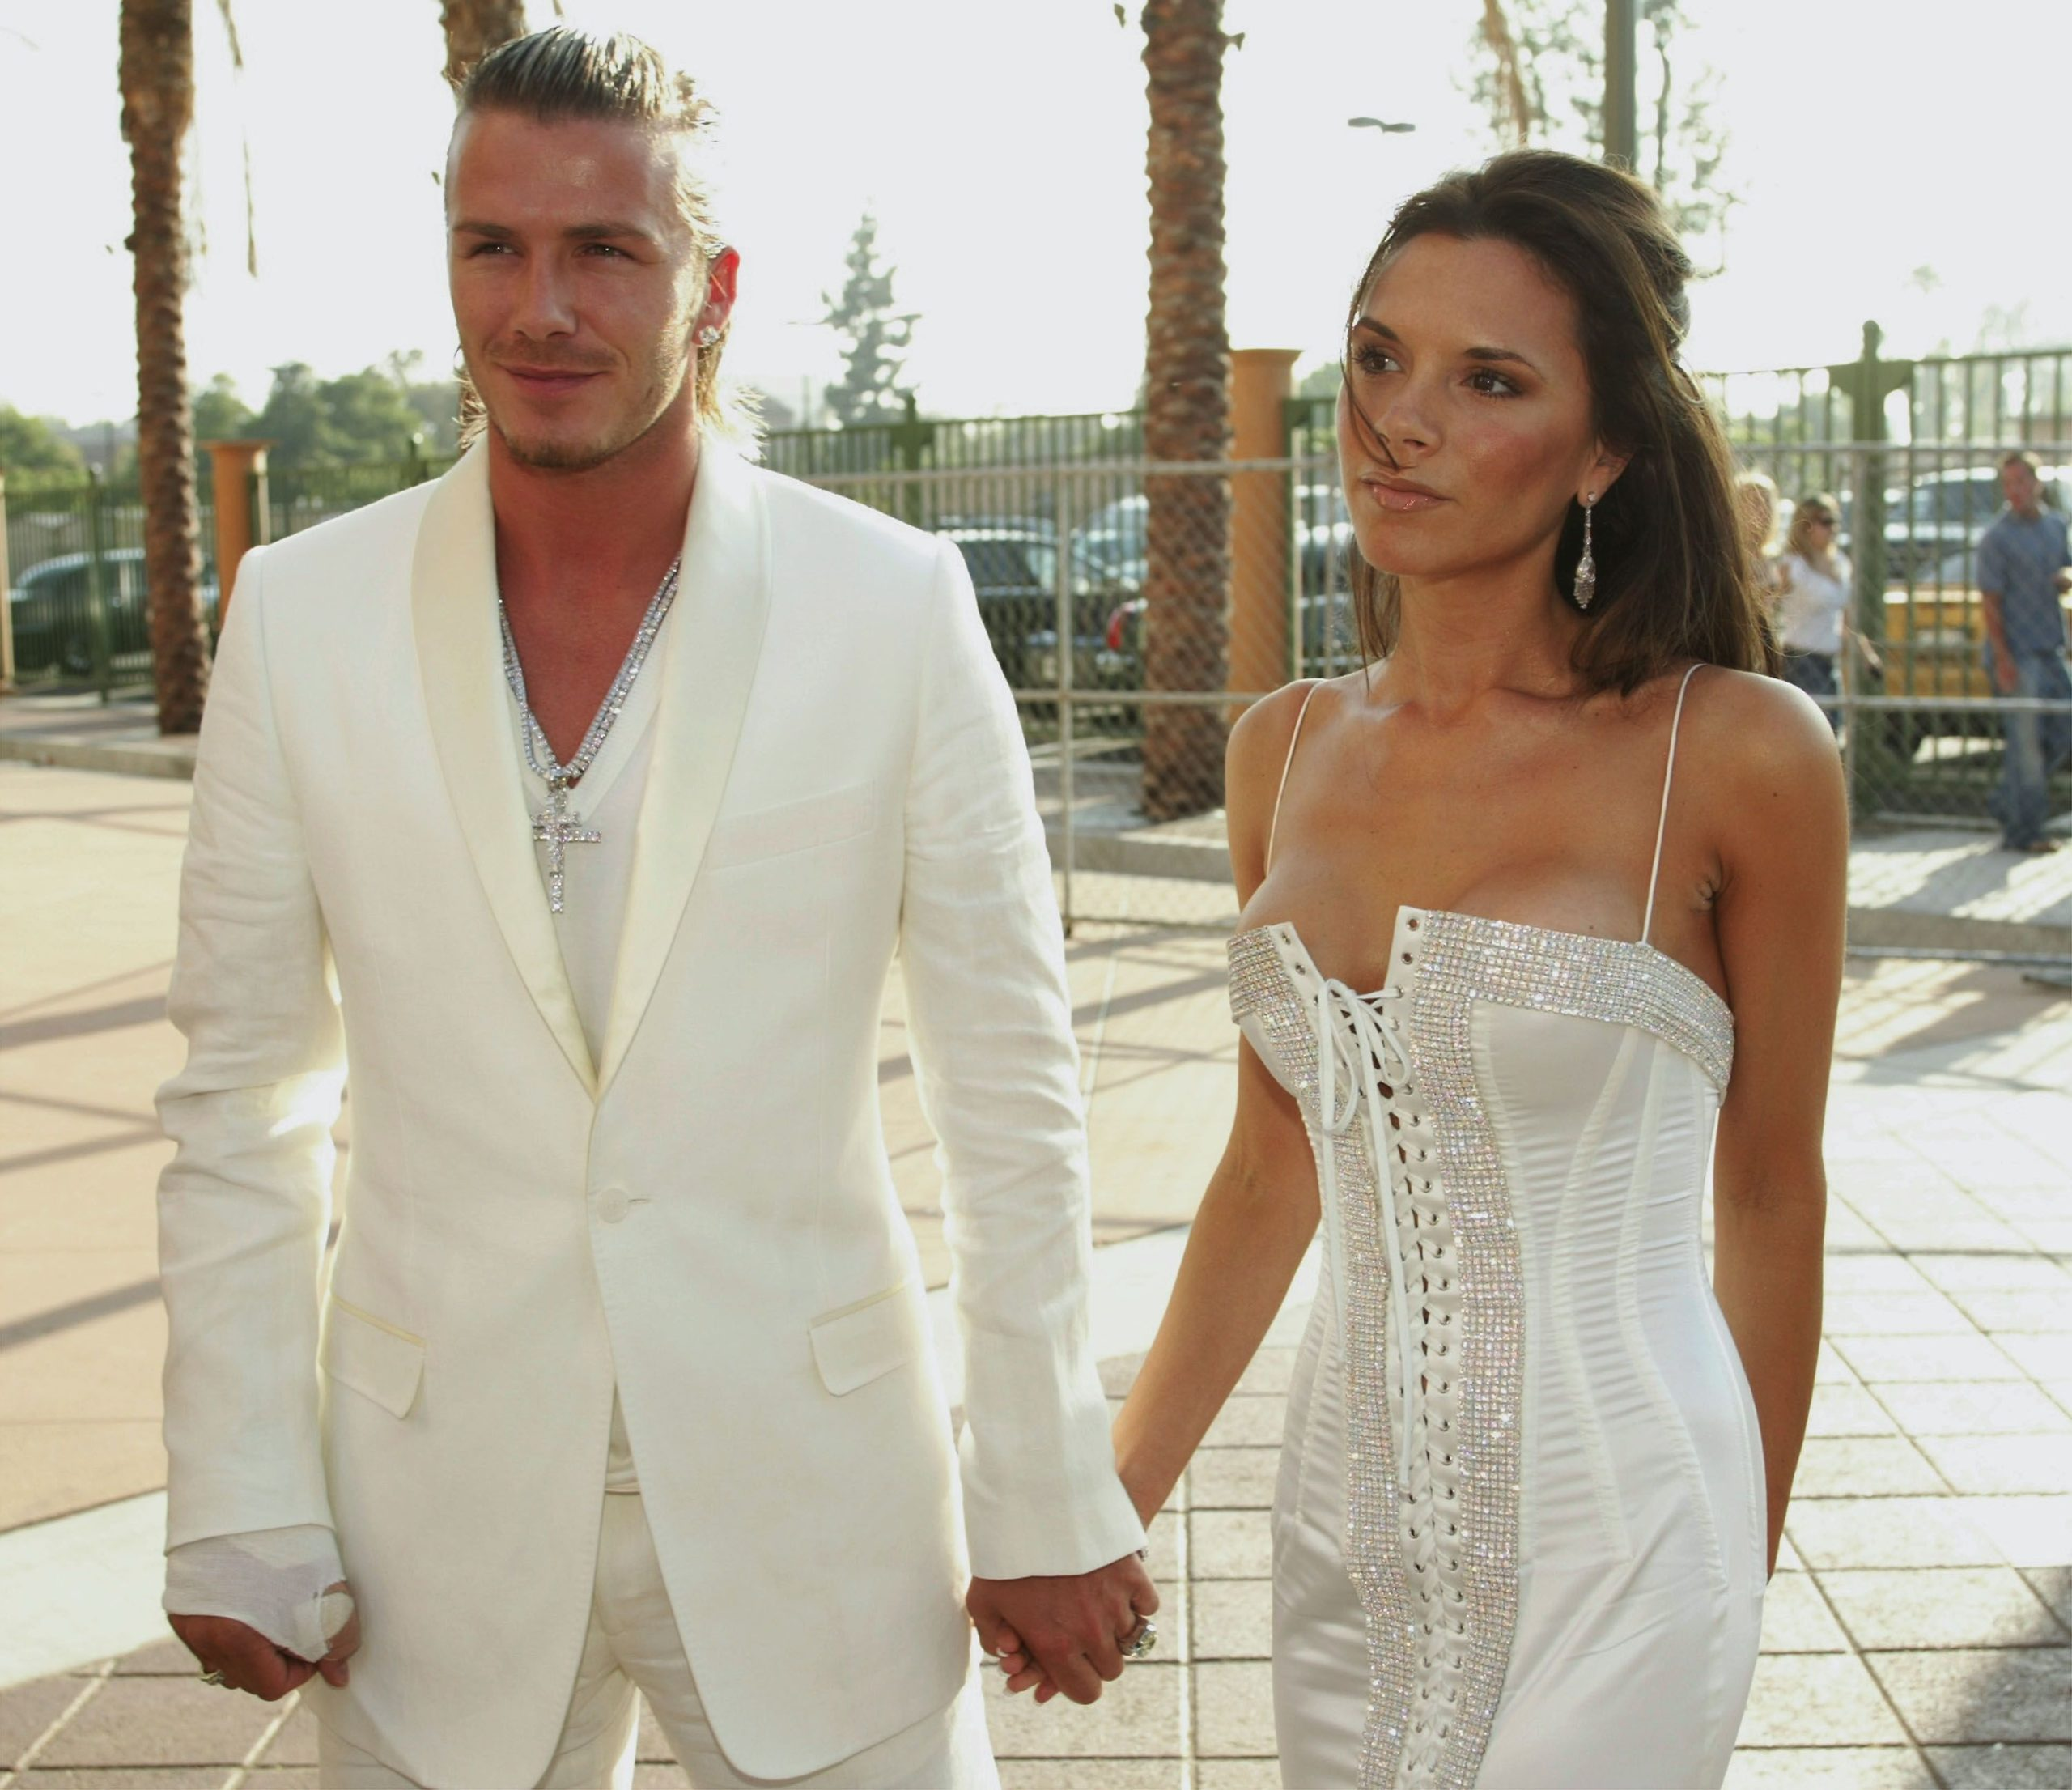 David Beckham and Victoria Beckham on Edge After Cheating Allegations!